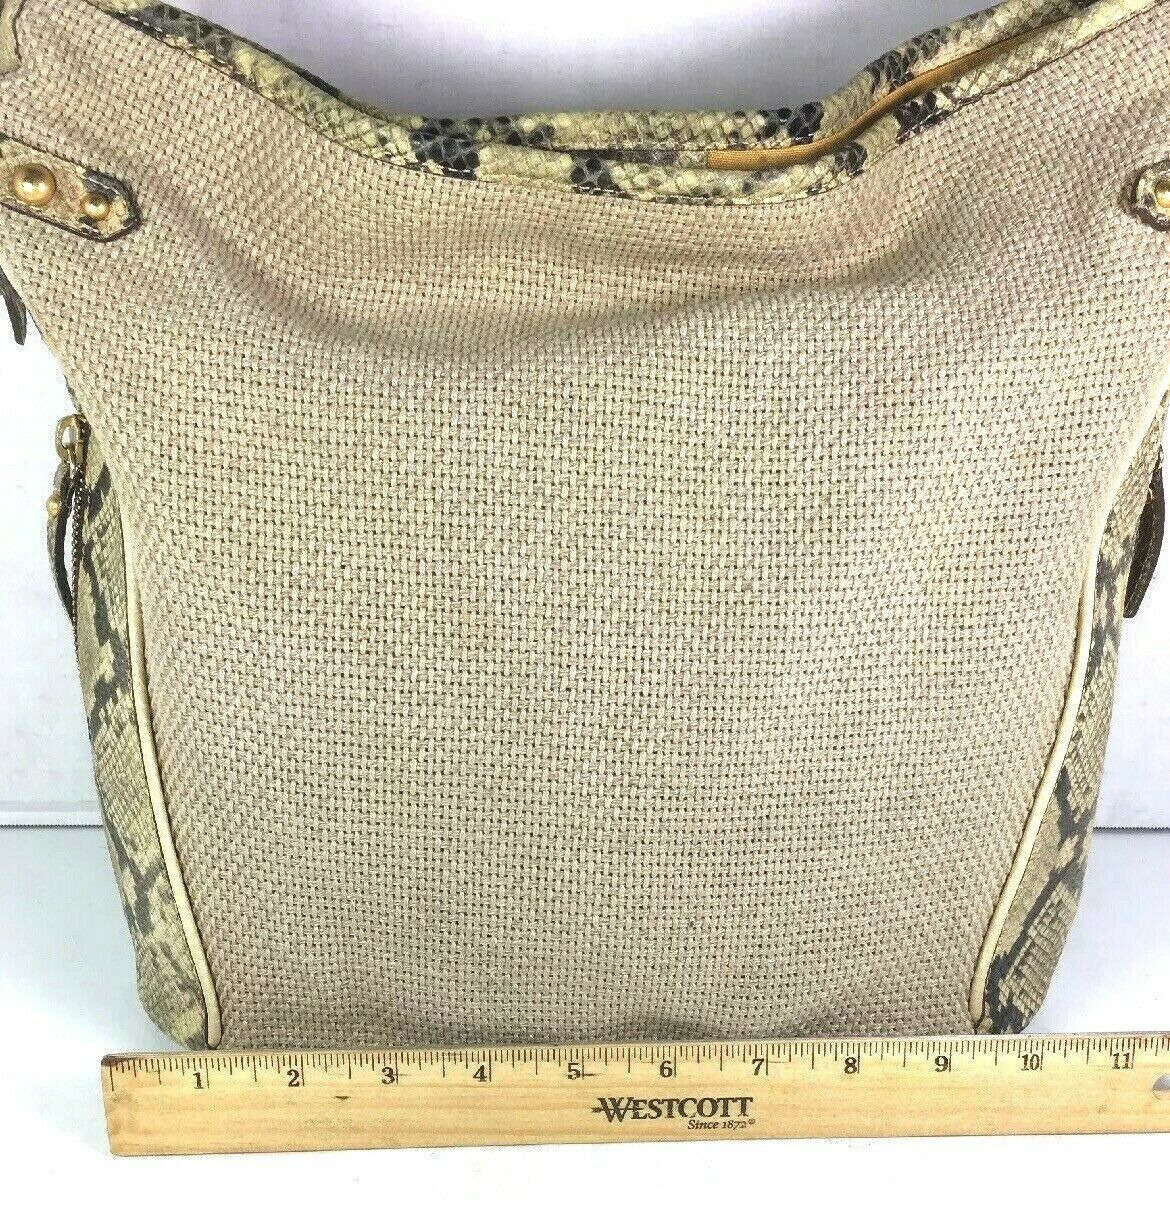 Brahmin Beige Fabric and Reptile Print Trim Shoulder Bag- Well Worn image 6